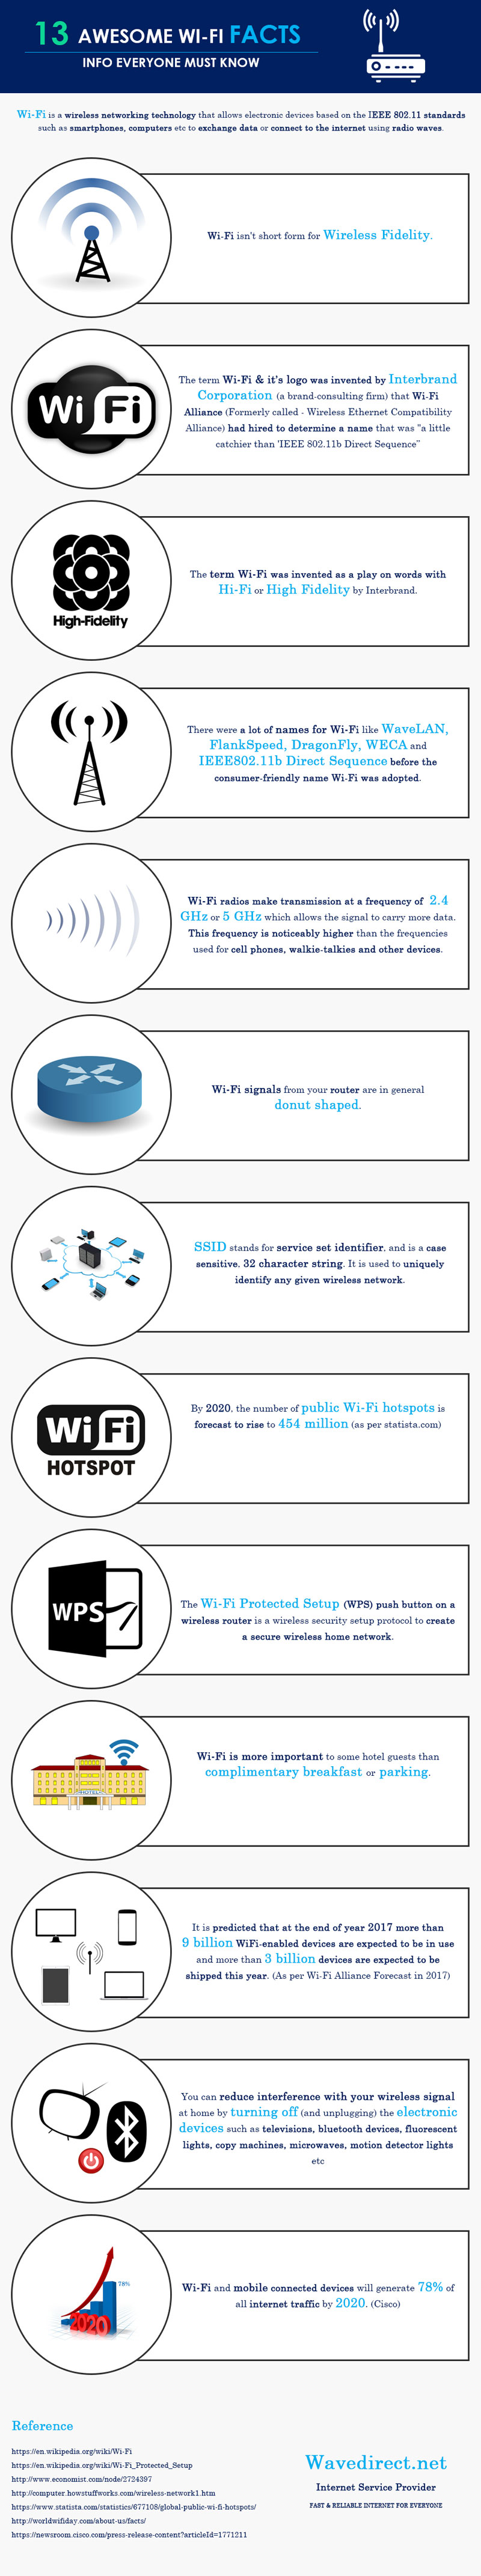 13 Awesome Wi-Fi Facts You Probably Didn't Know